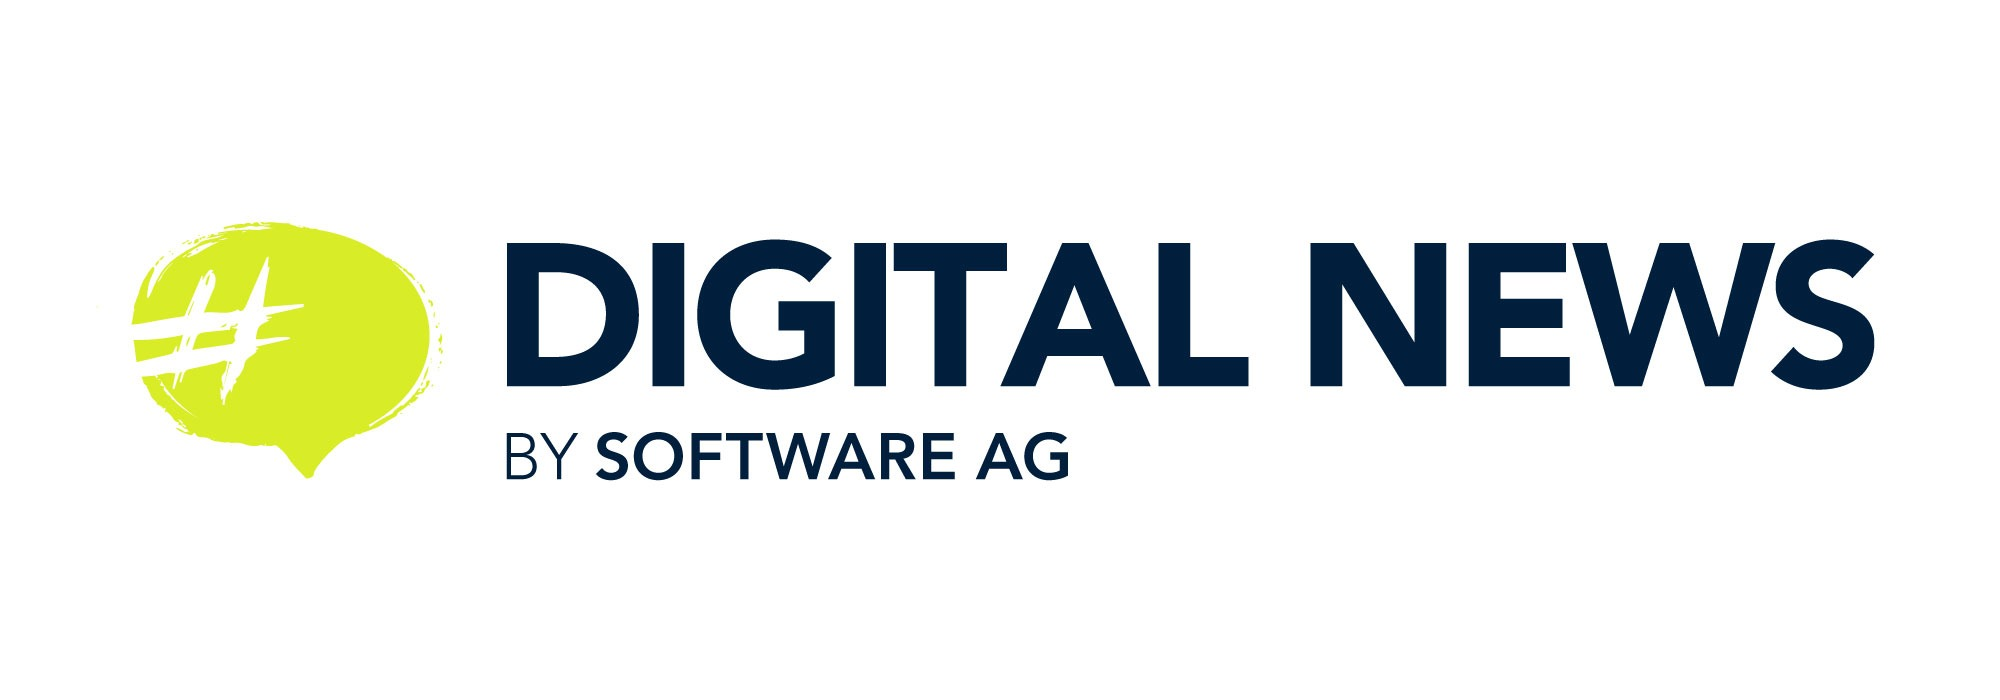 Digital News by Software AG